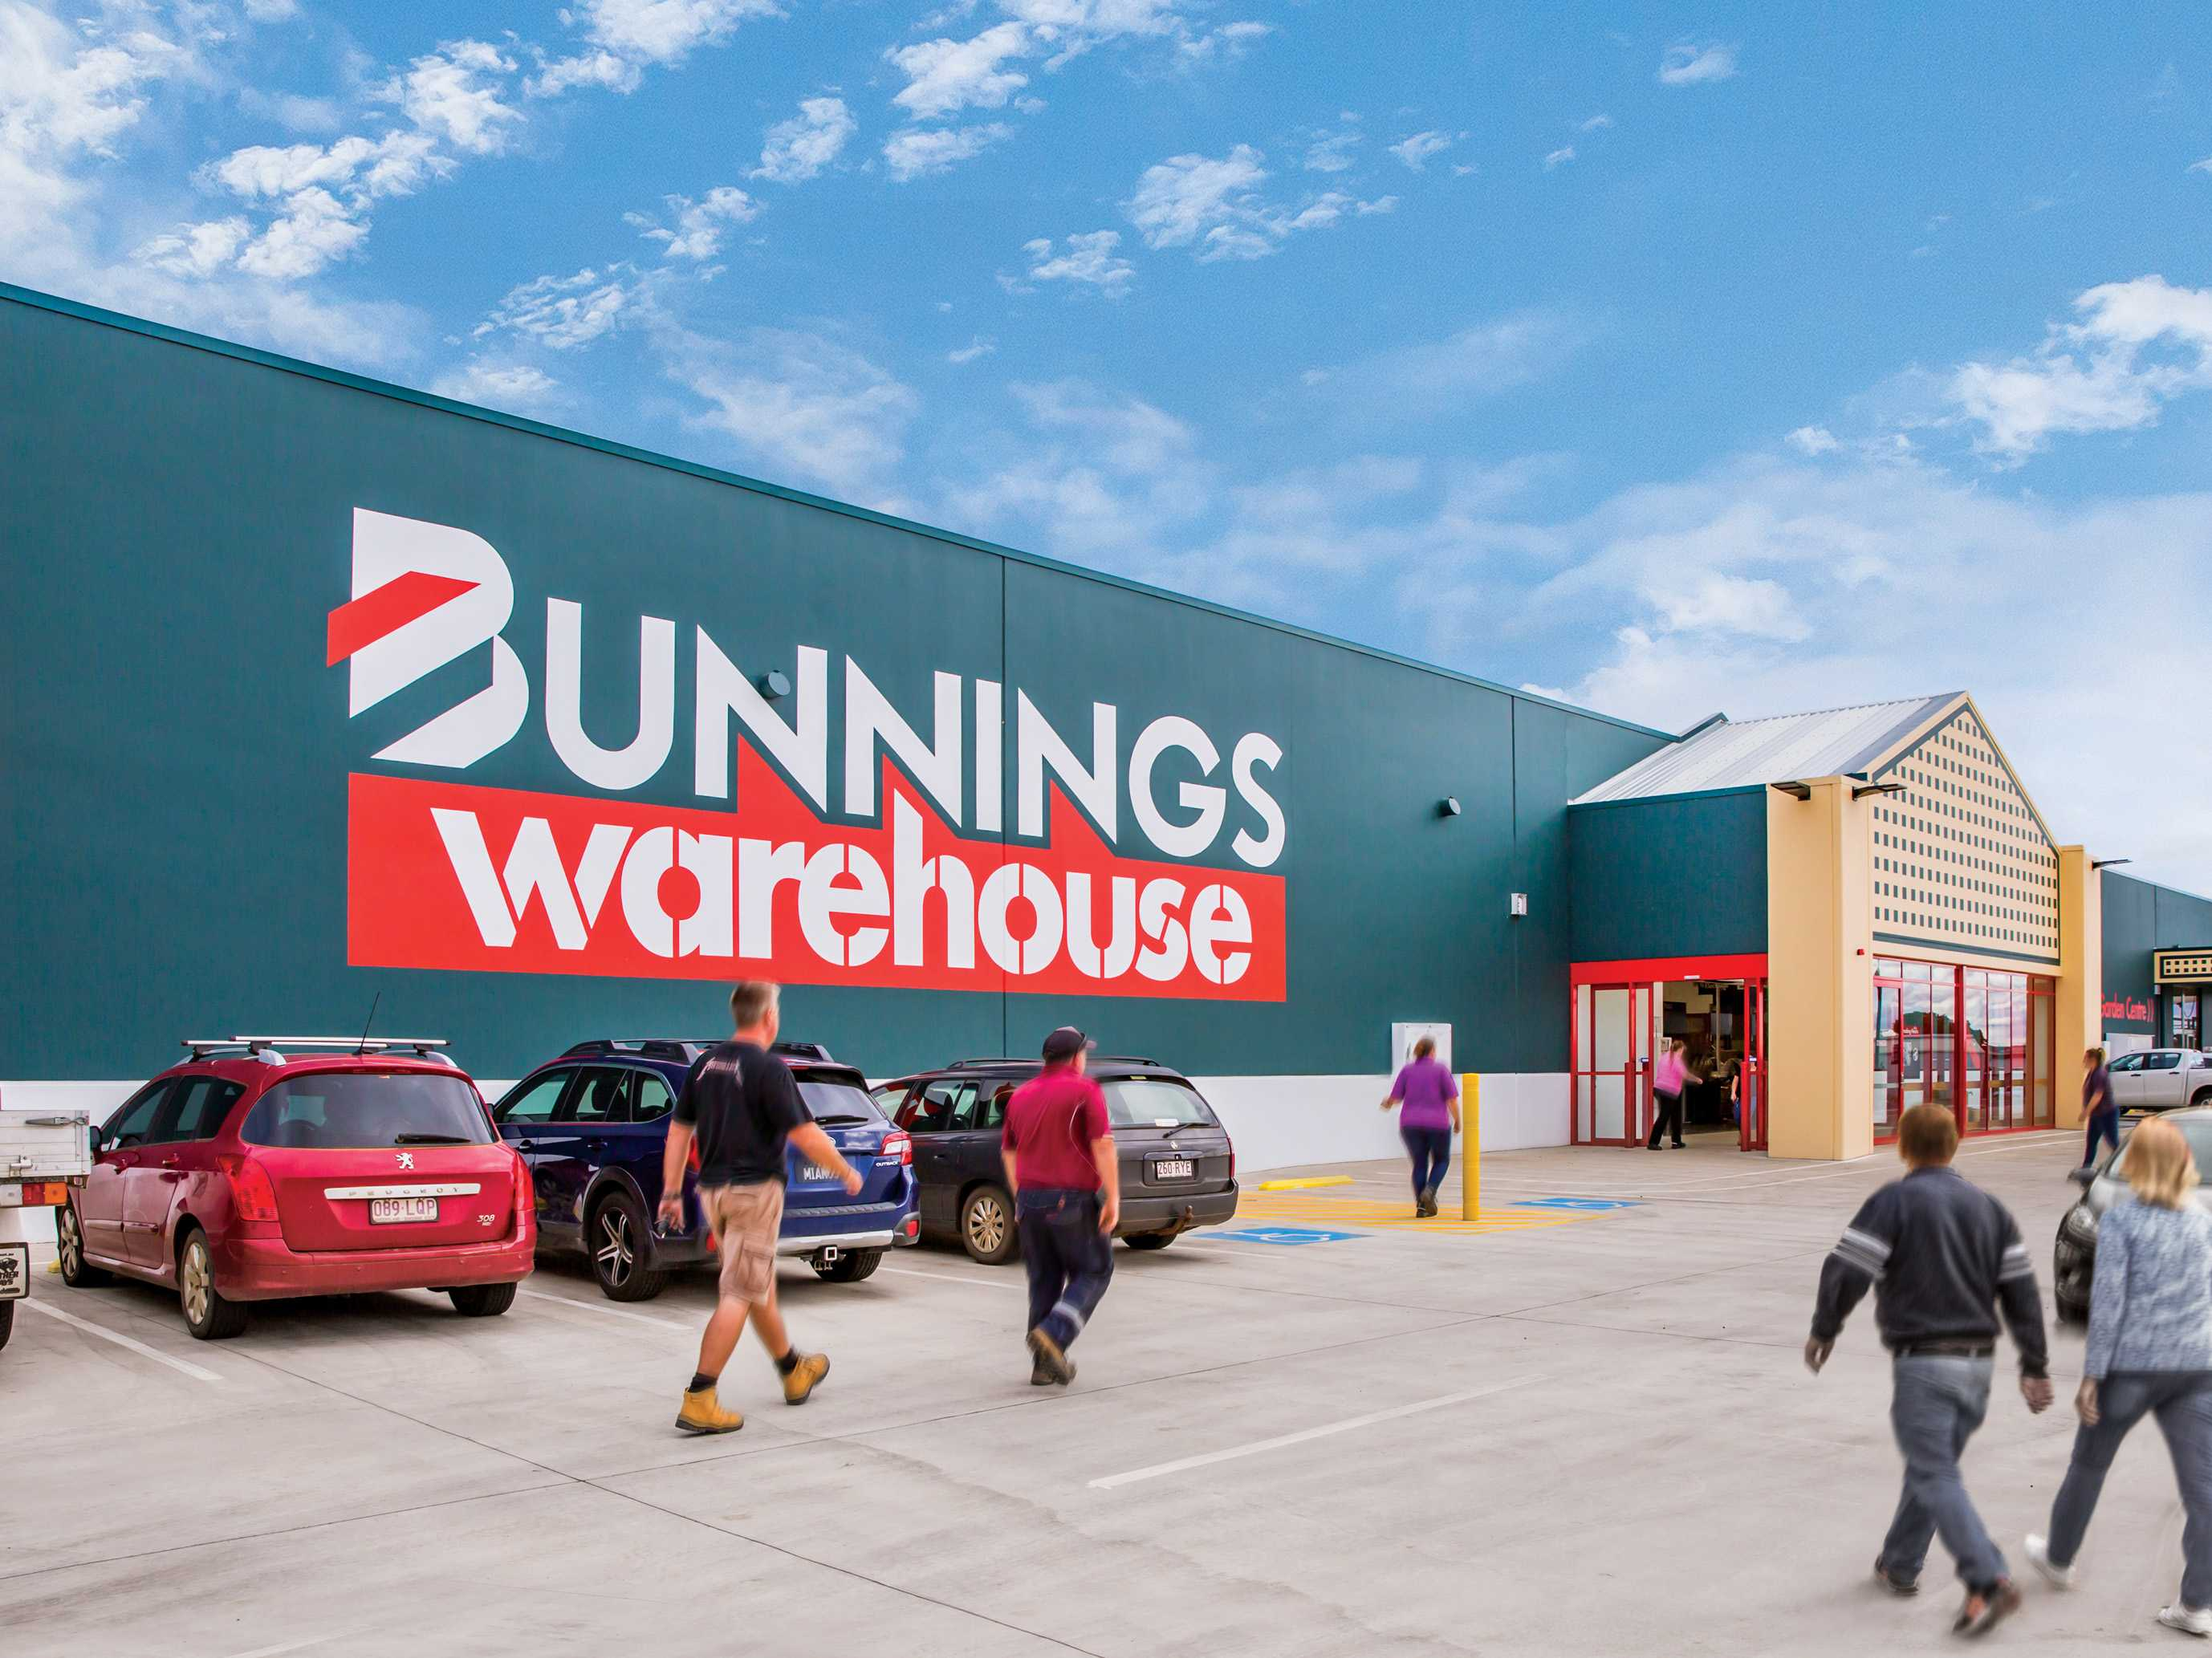 Brand new Bunnings Warehouse in Queensland